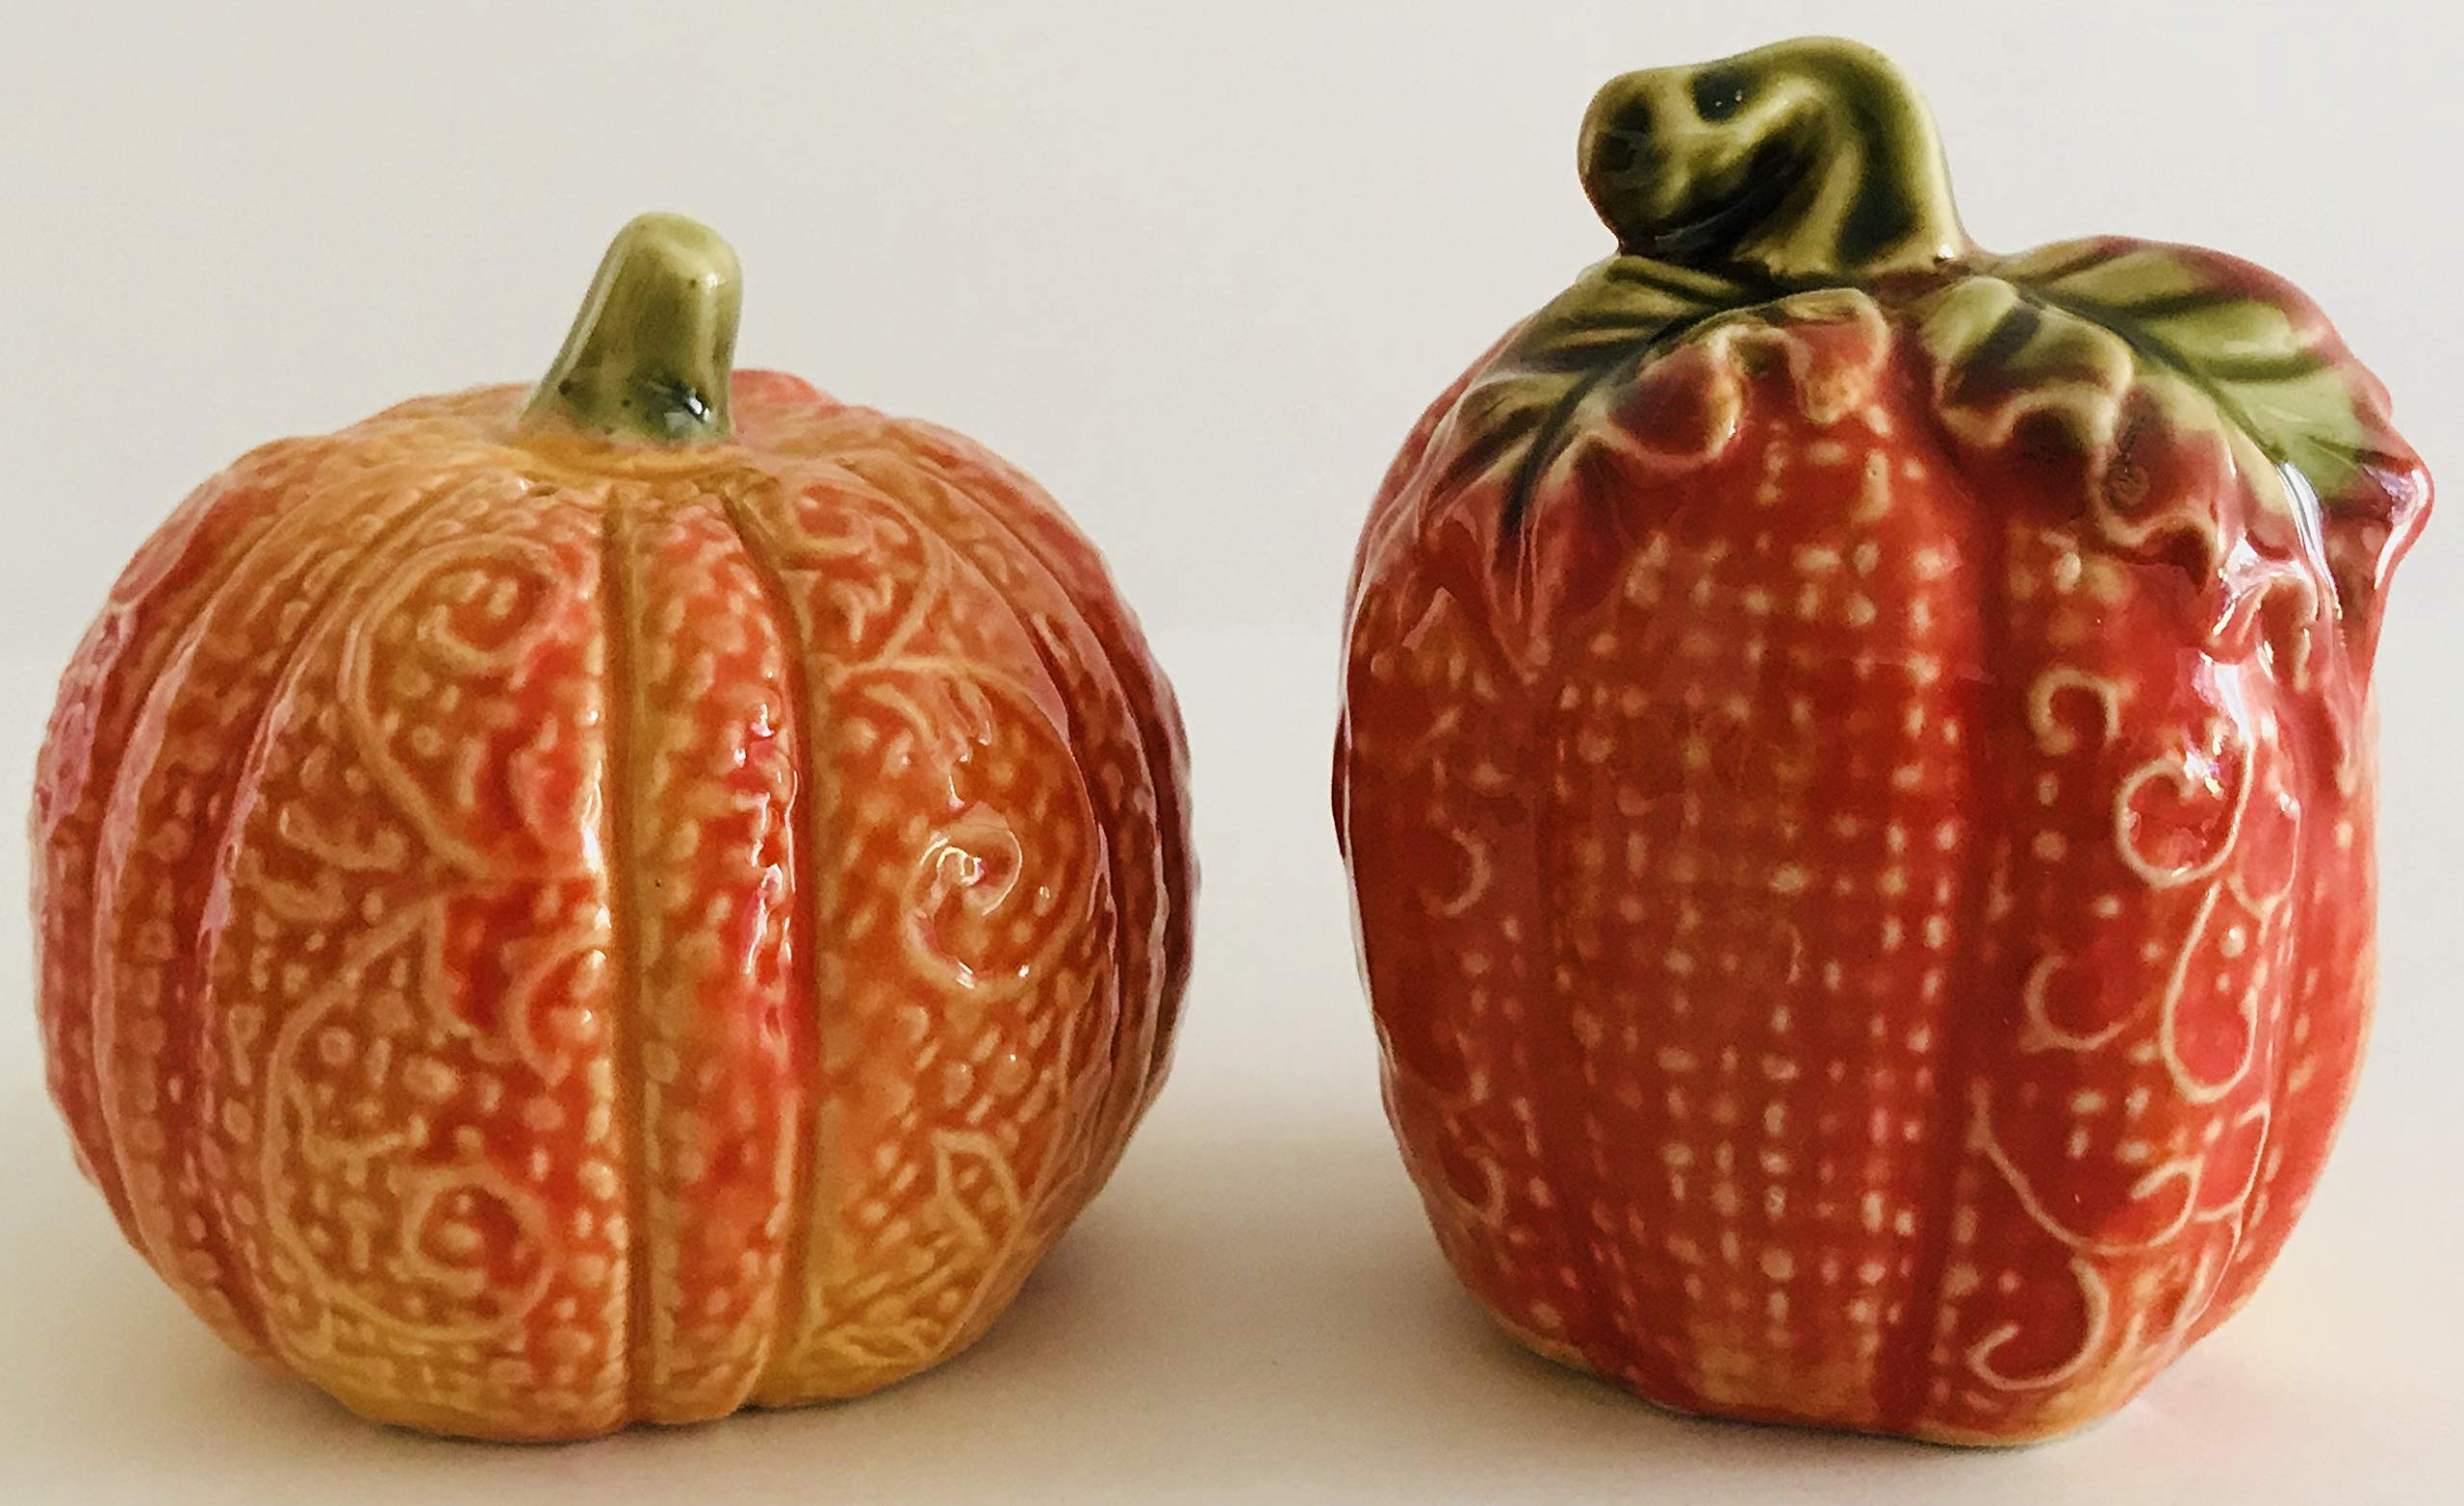 Autumn Salt & Pepper Shakers | 2.5 inches x 2 inches (Pumpkins)